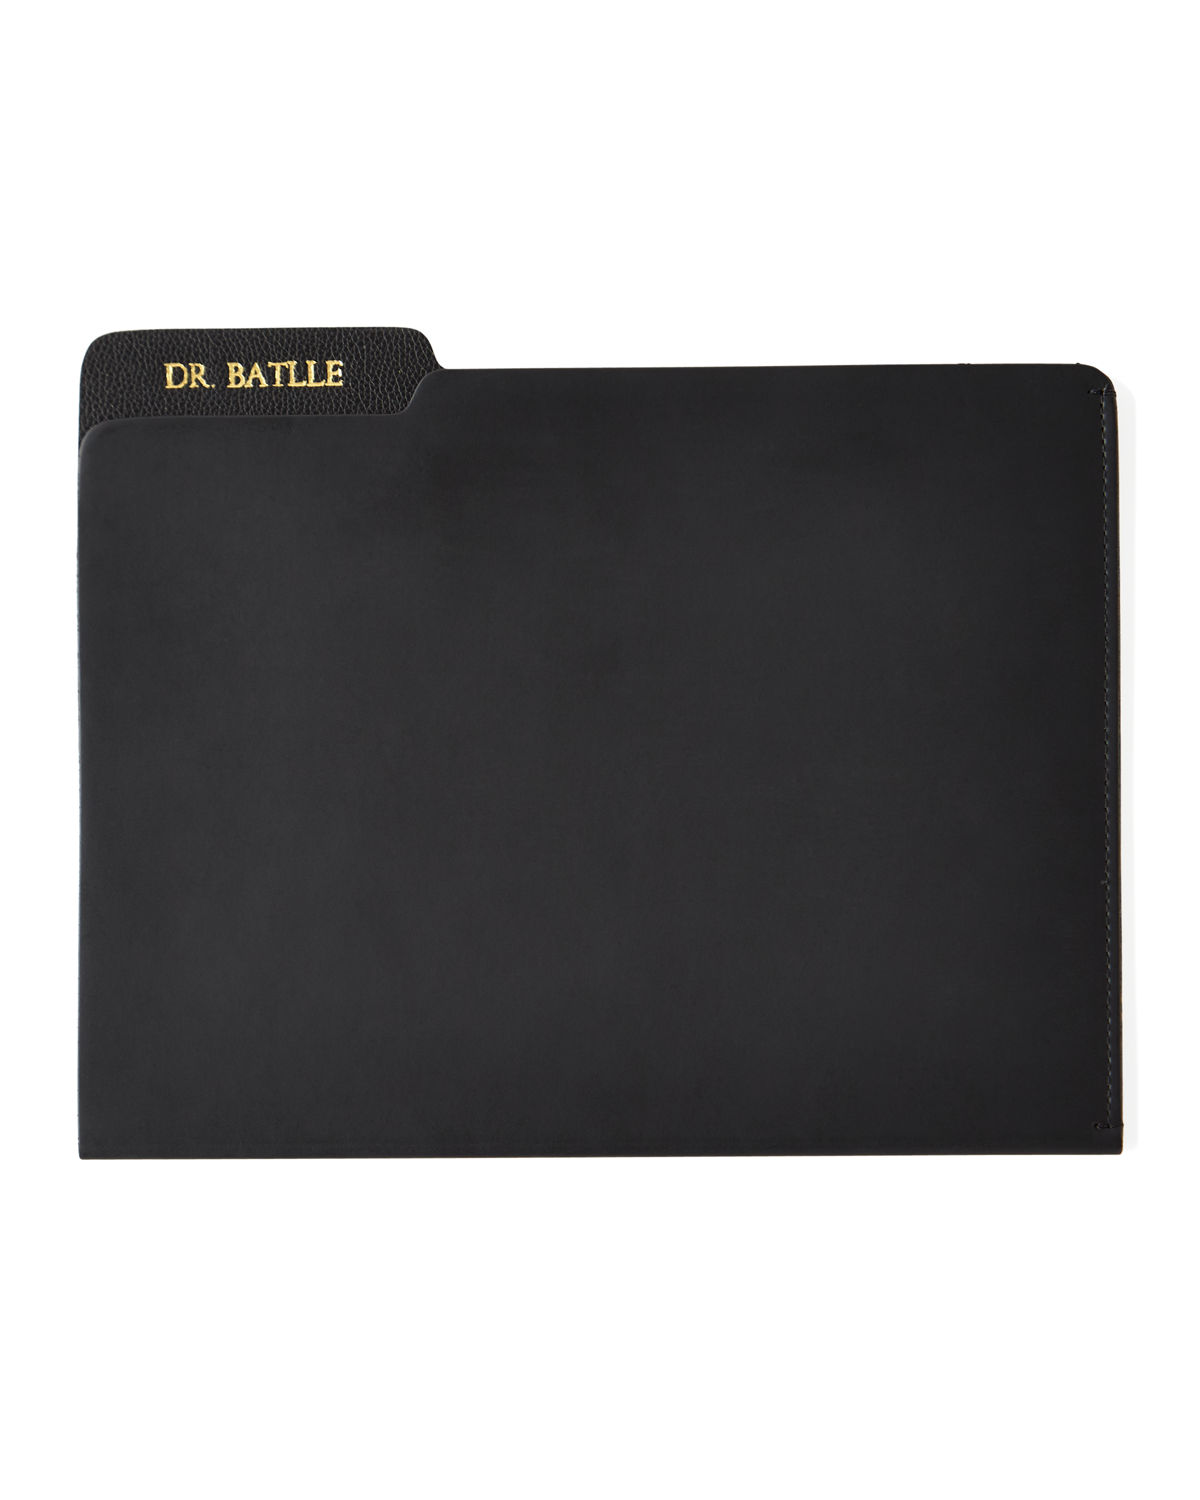 Genuine Leather File Folder Personalized